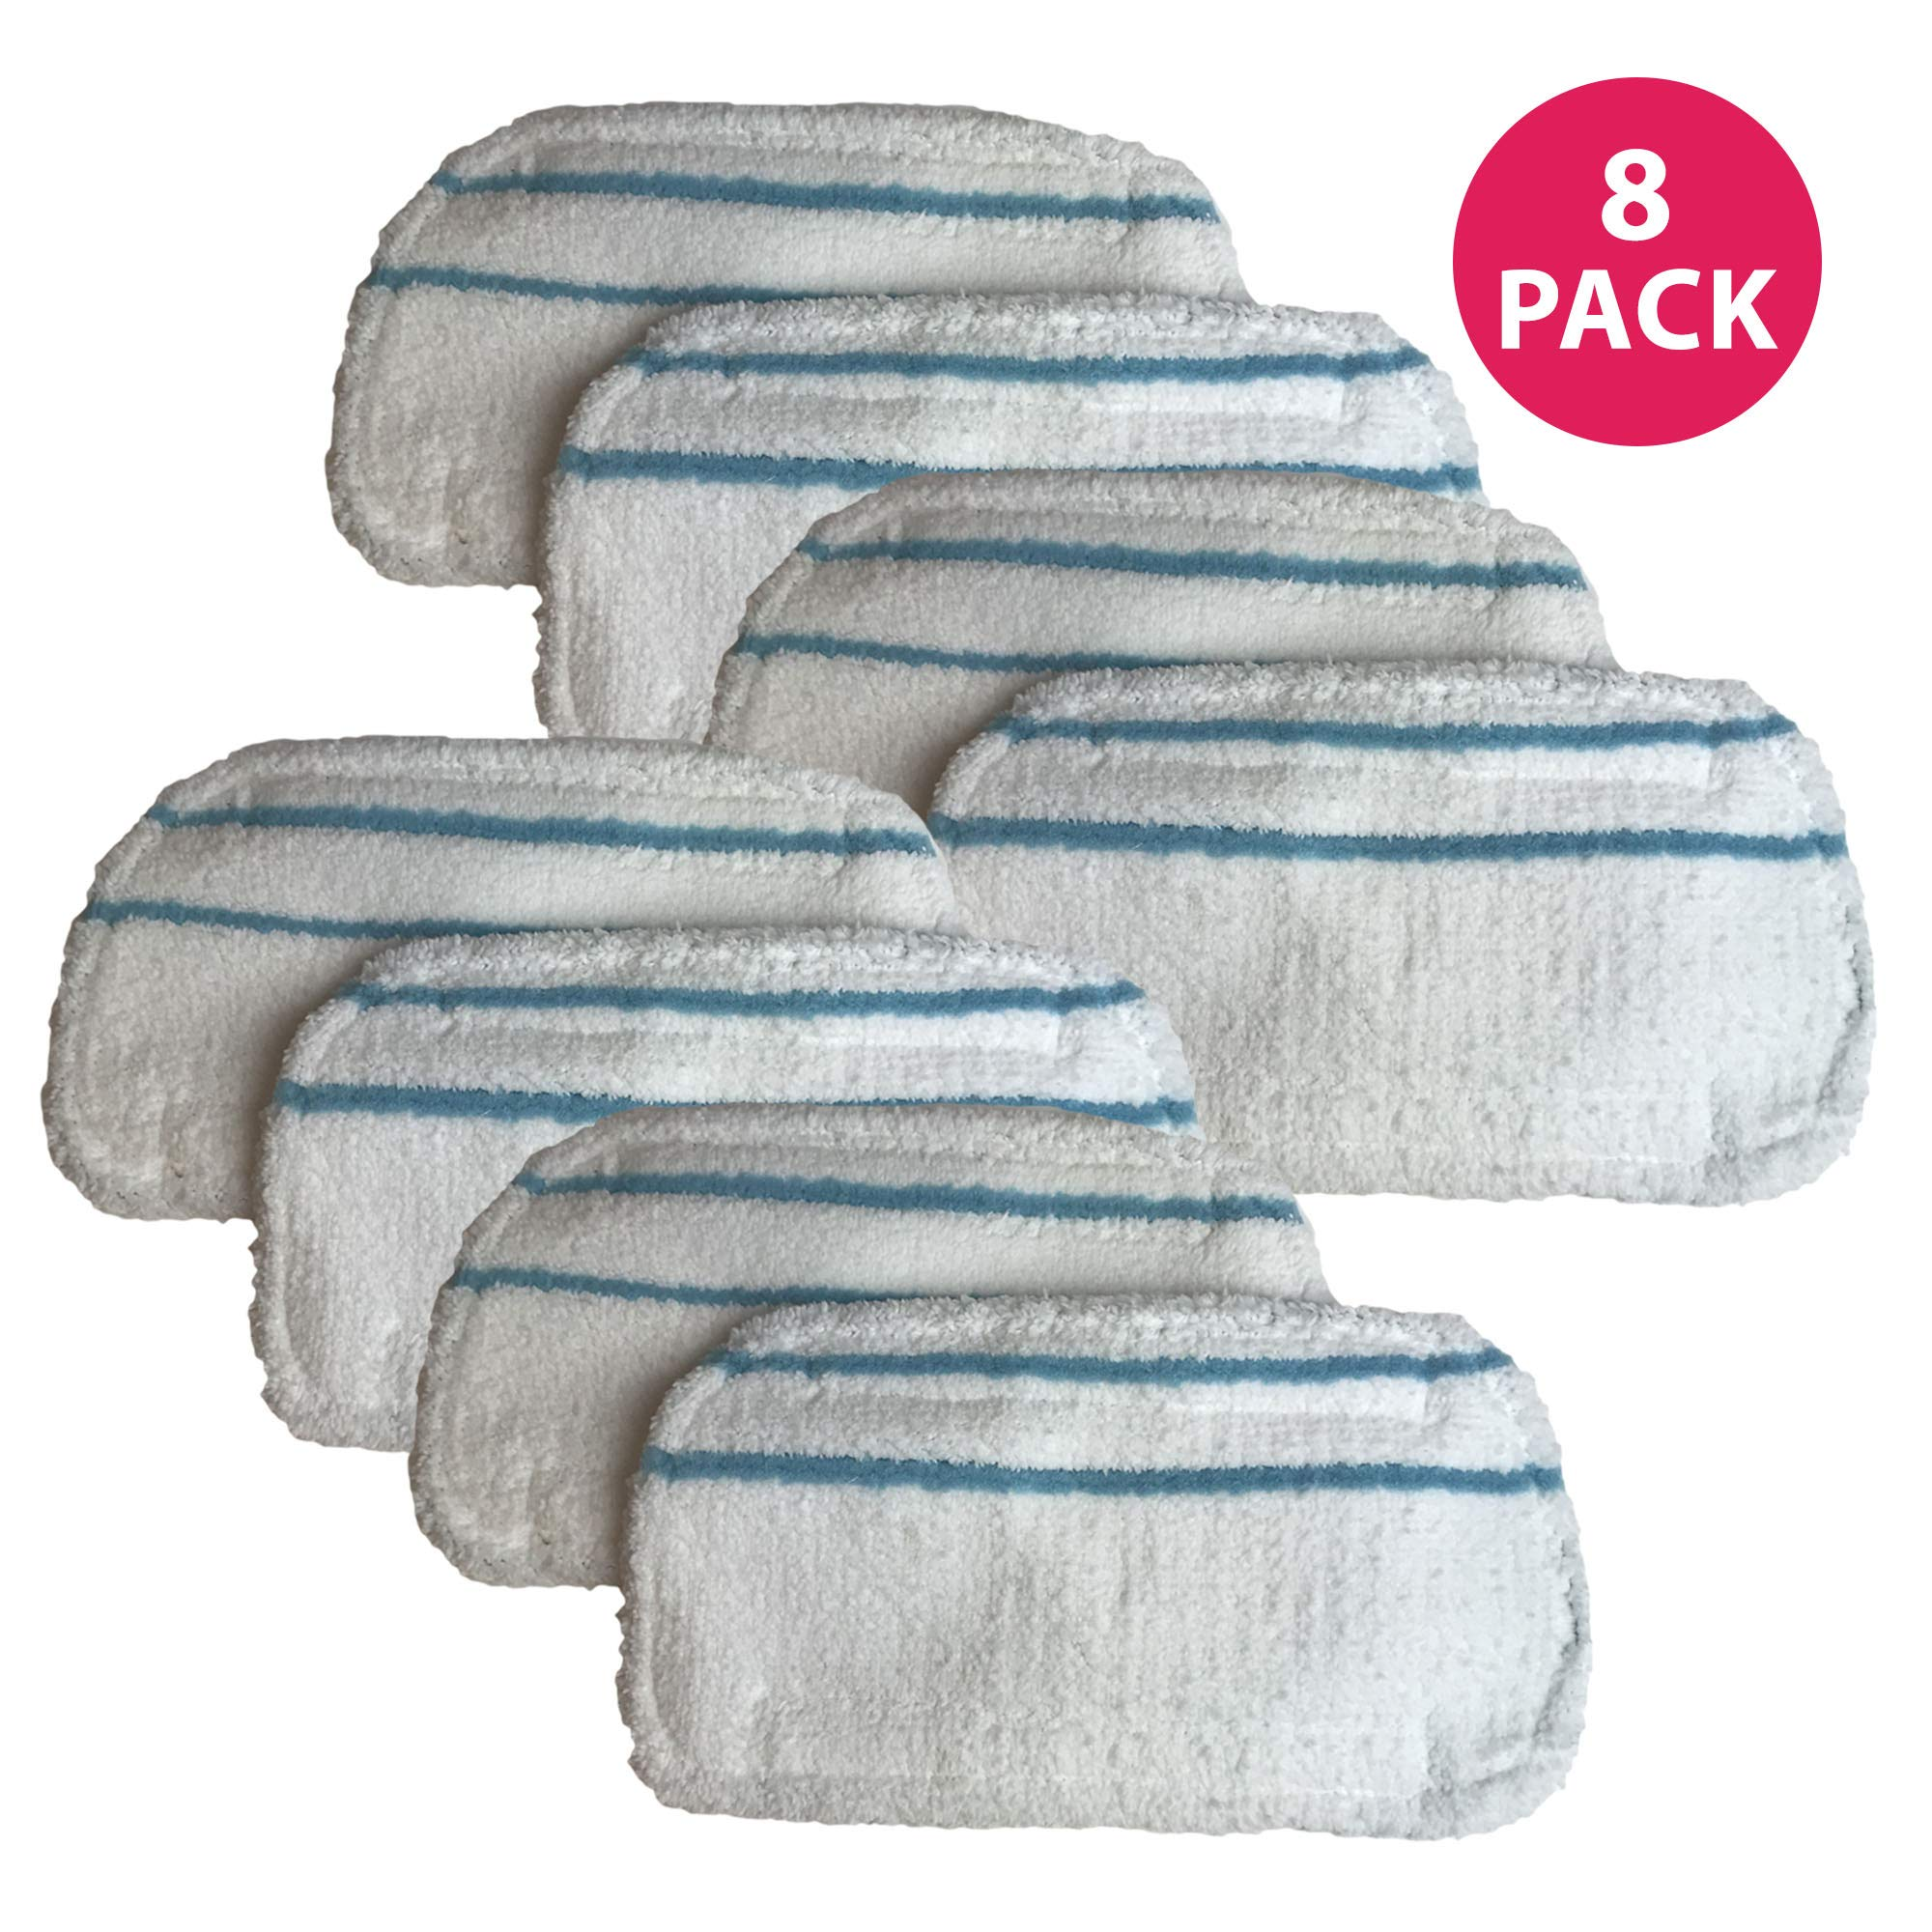 Crucial Vacuum Replacement Mop Pads - Compatible with Black & Decker Part # SMP20 Steam Mop - Microfiber Mop Pads Models - Ideal for Lightweight, Washable, Reusable for Floors, Surfaces (8 Pack)